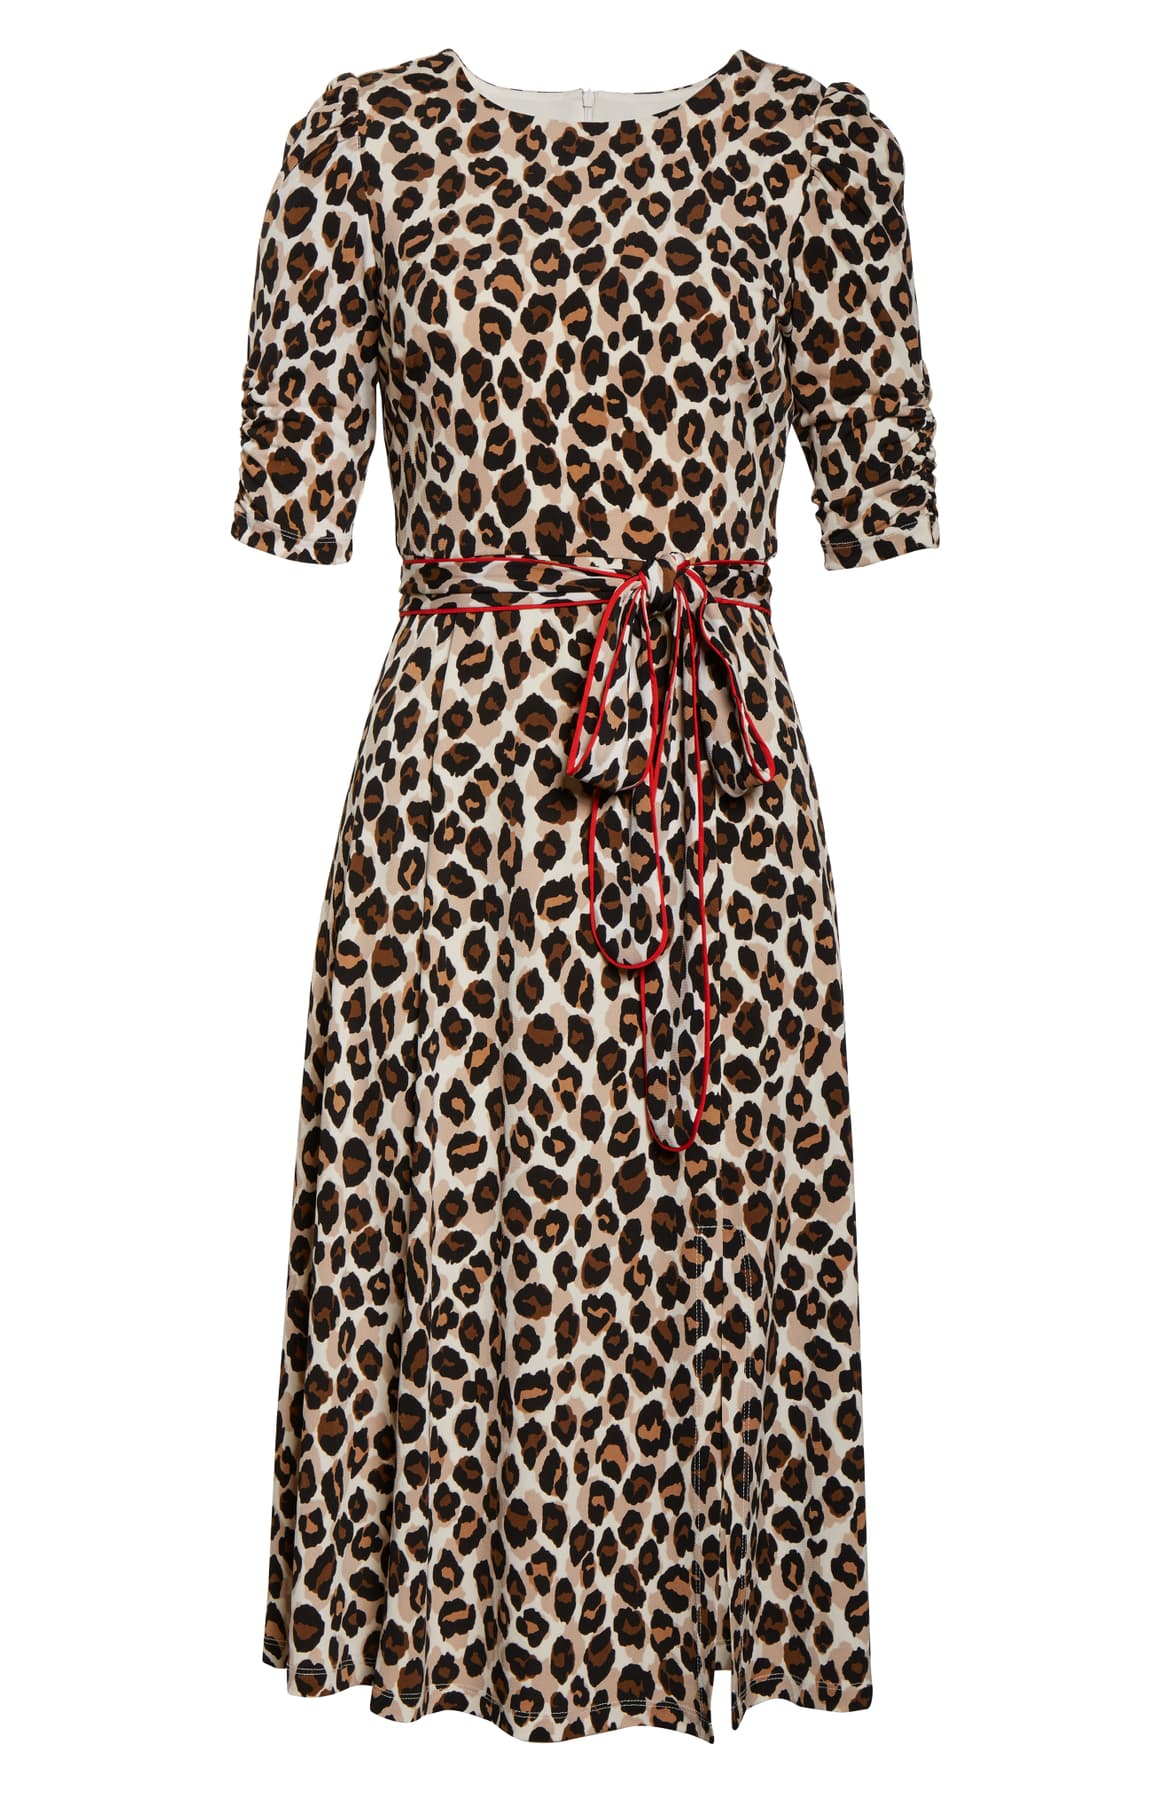 Fire-hot red piping traces the flattering sash and complements the fierce leopard print of this fine gauge–knit midi dress framed by softly shirred sleeves. $82.80 -{ }Shop the Look{ }(Image: Nordstrom){ }